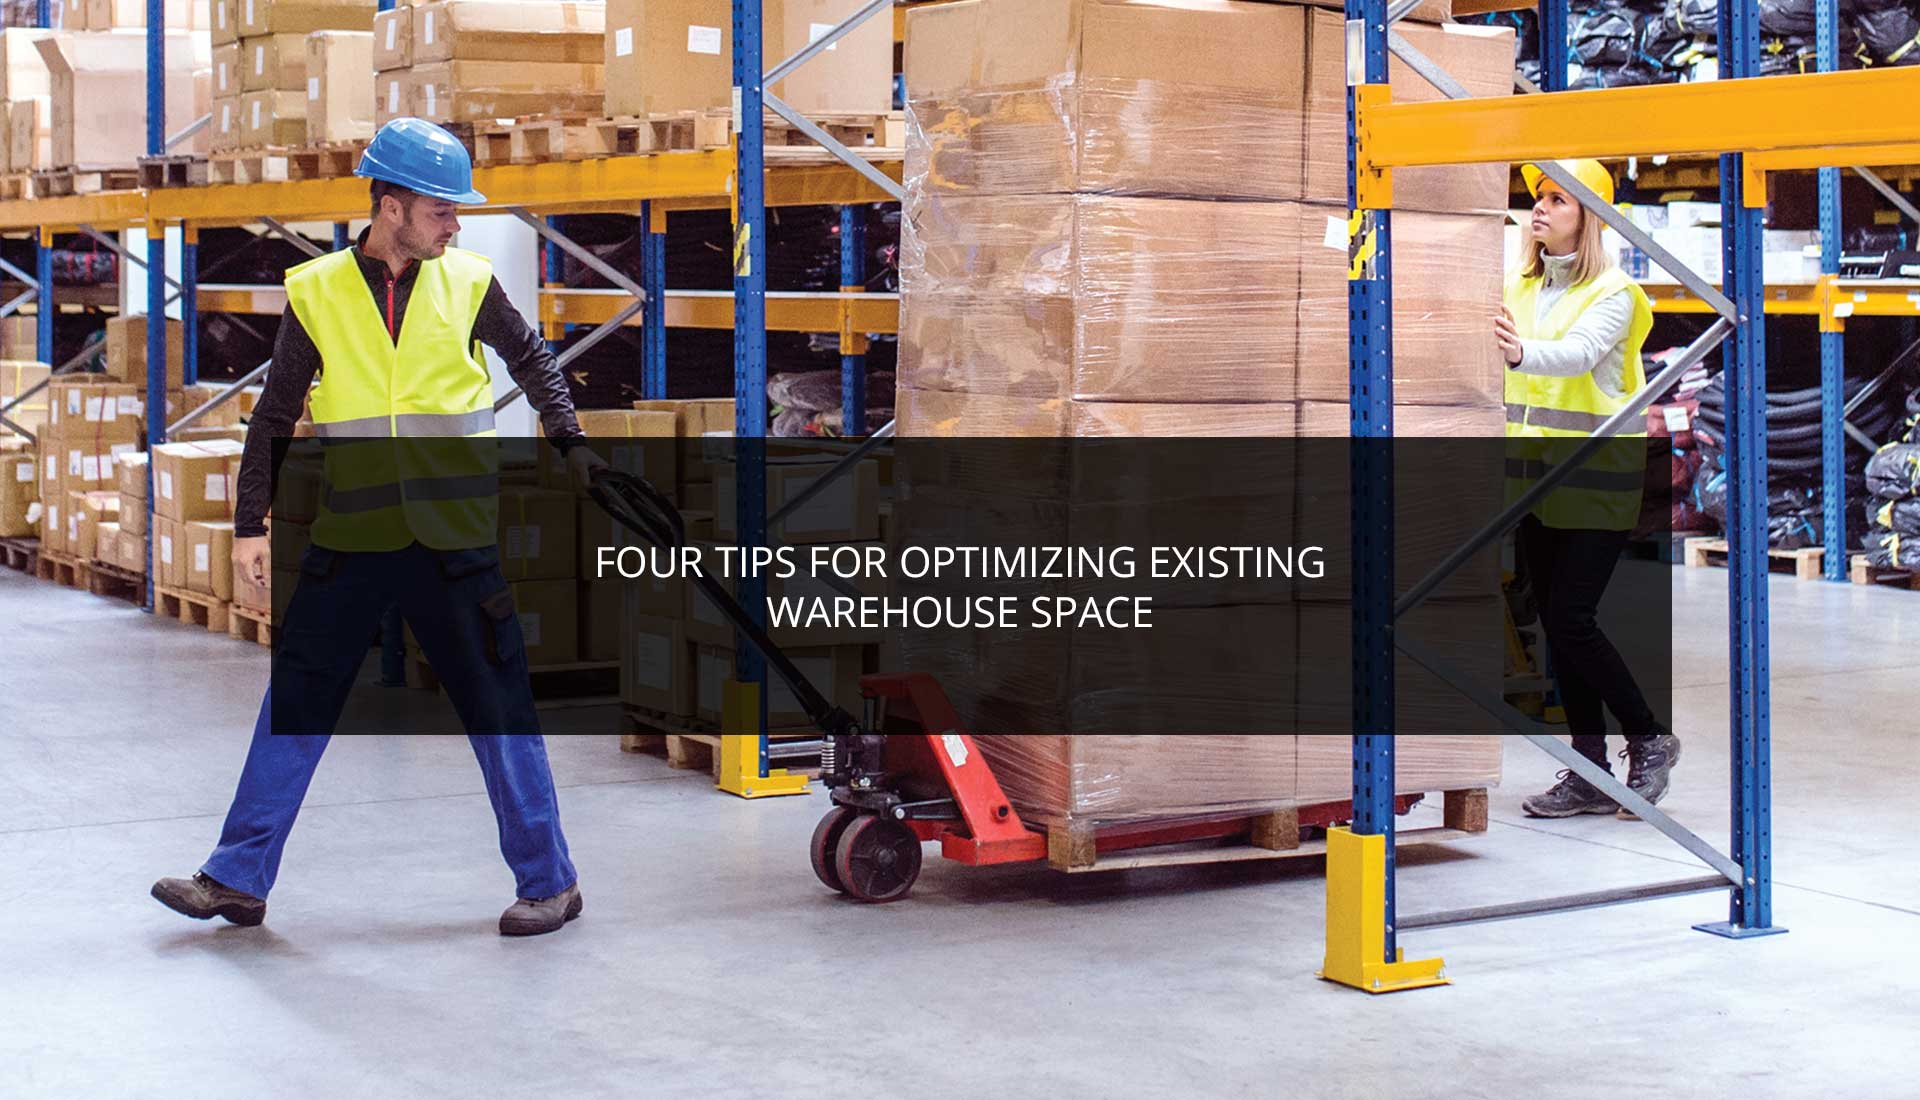 Four Tips for Optimizing Existing Warehouse Space